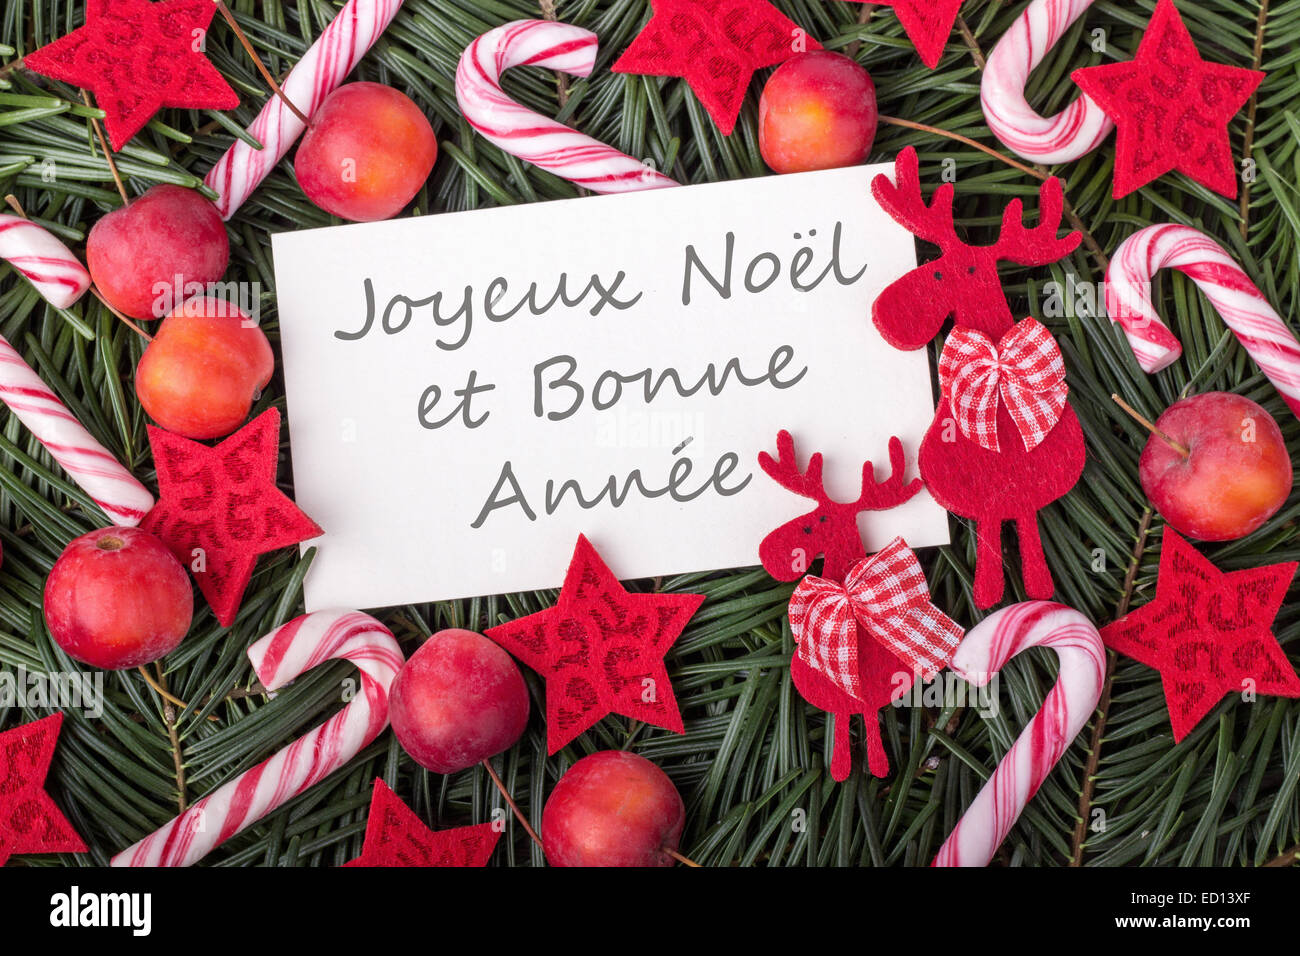 Joyeux Noel Apple.French Christmas Card With Pine Green Candy Canes Apples